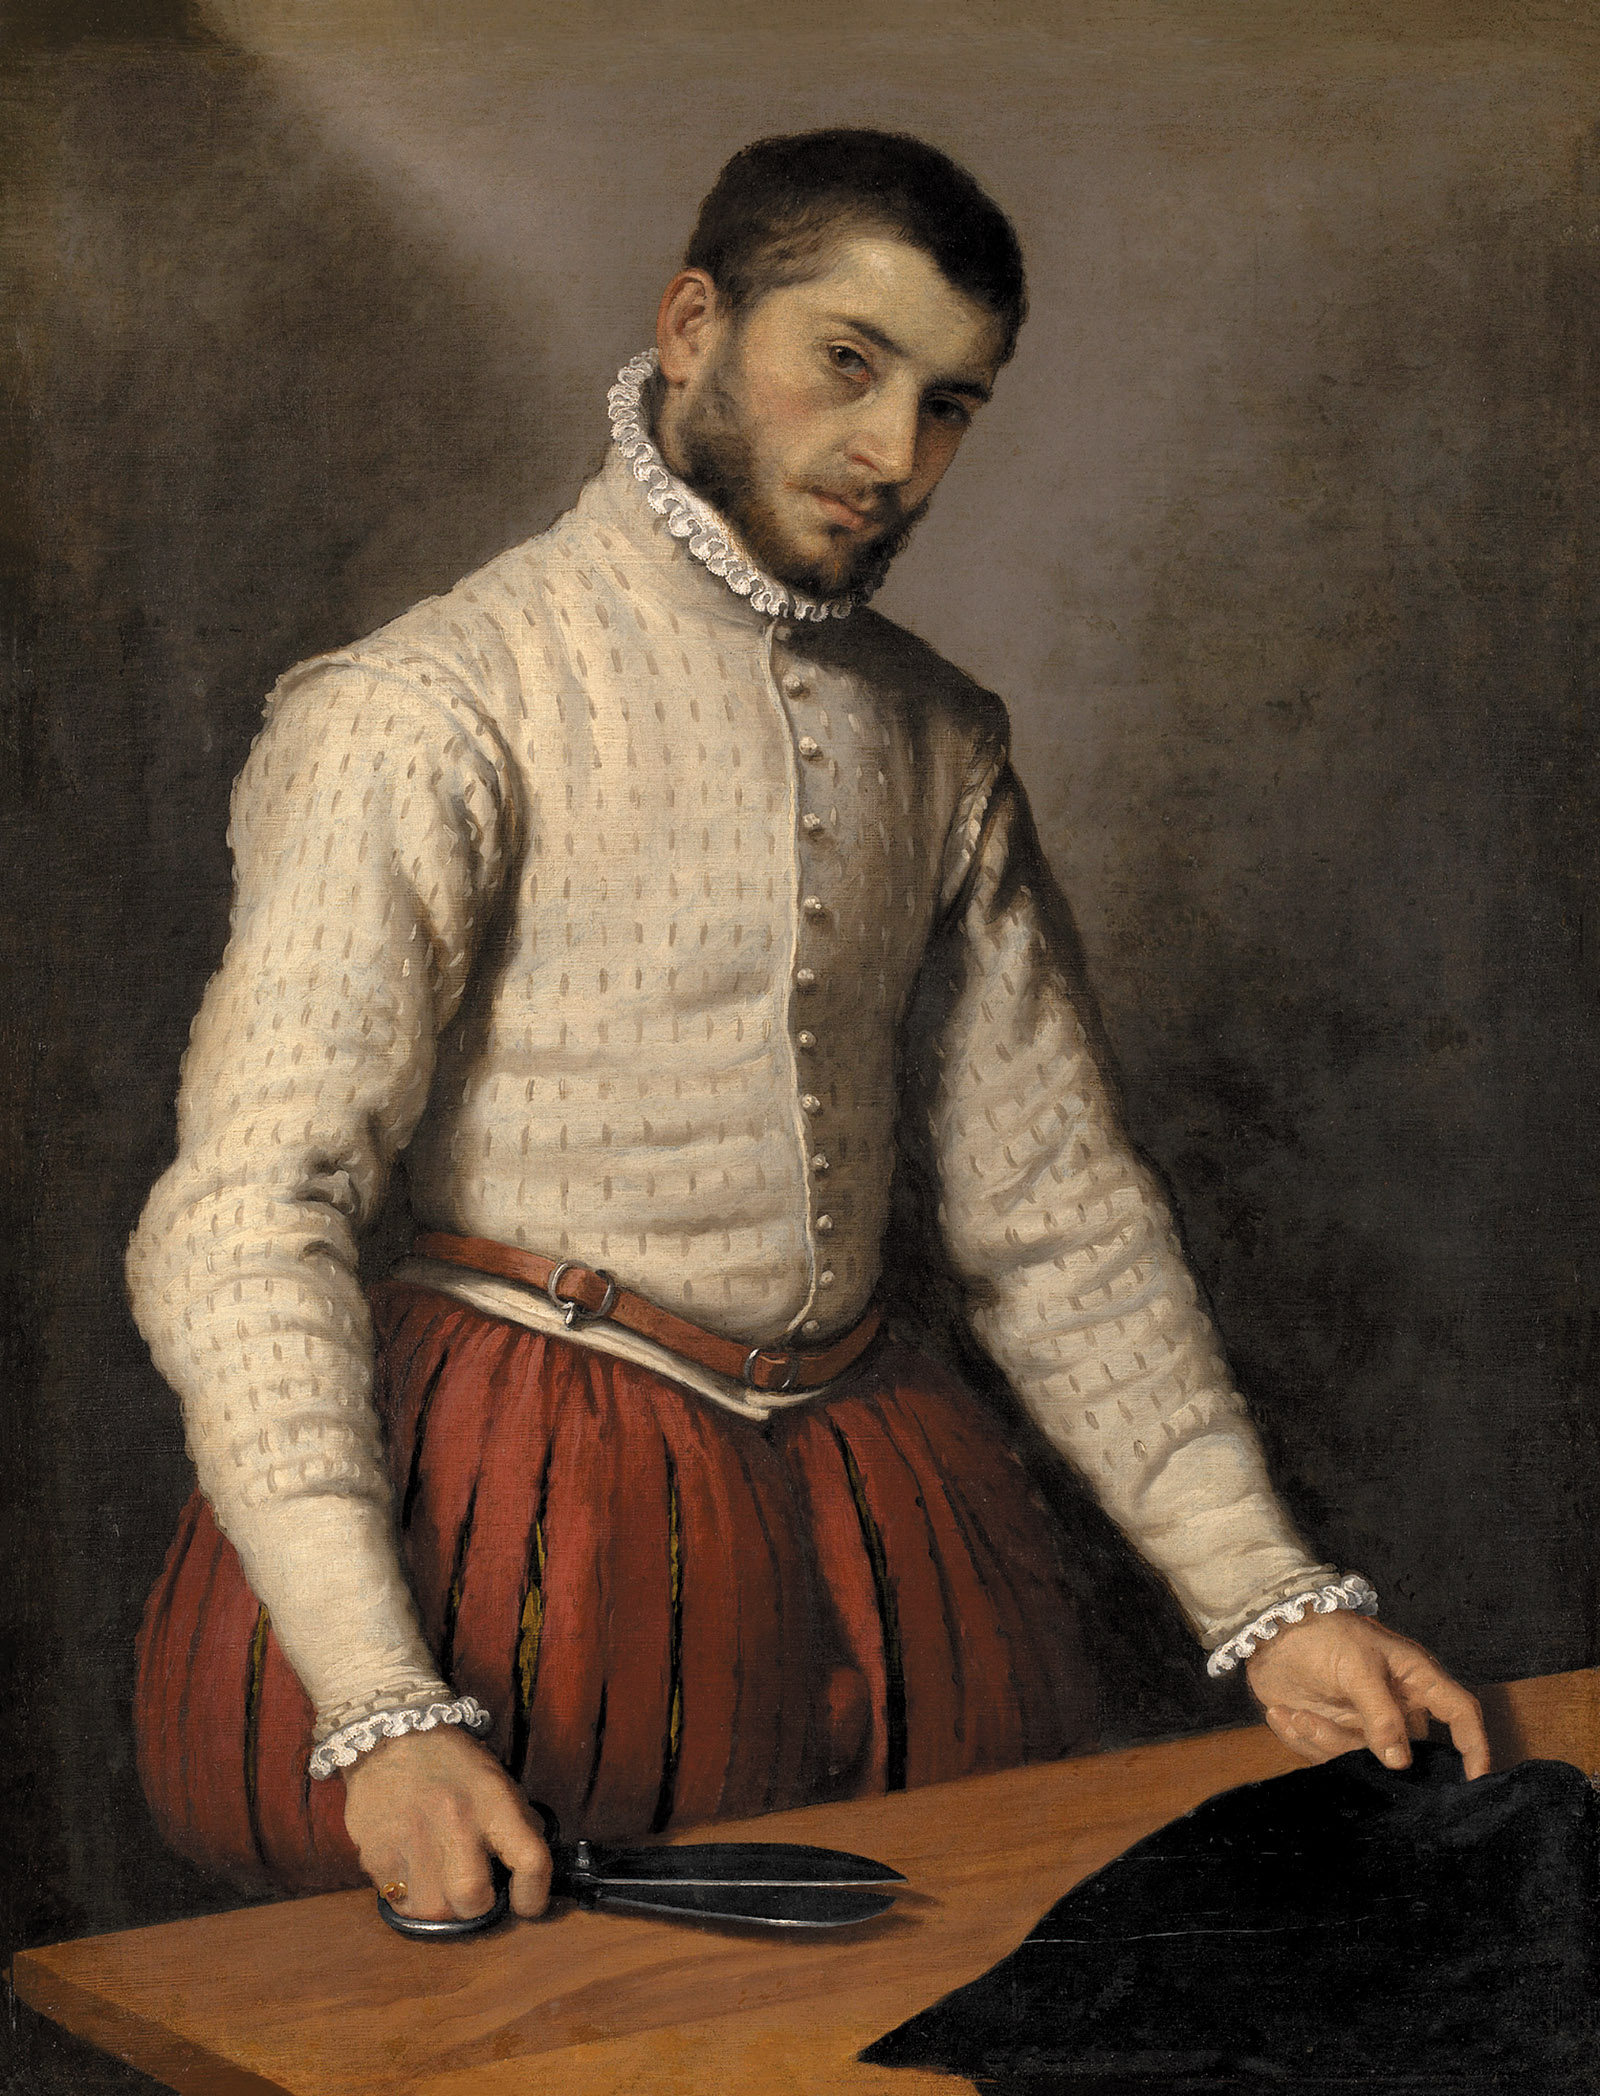 The Tailor by Giovanni Battista Moroni